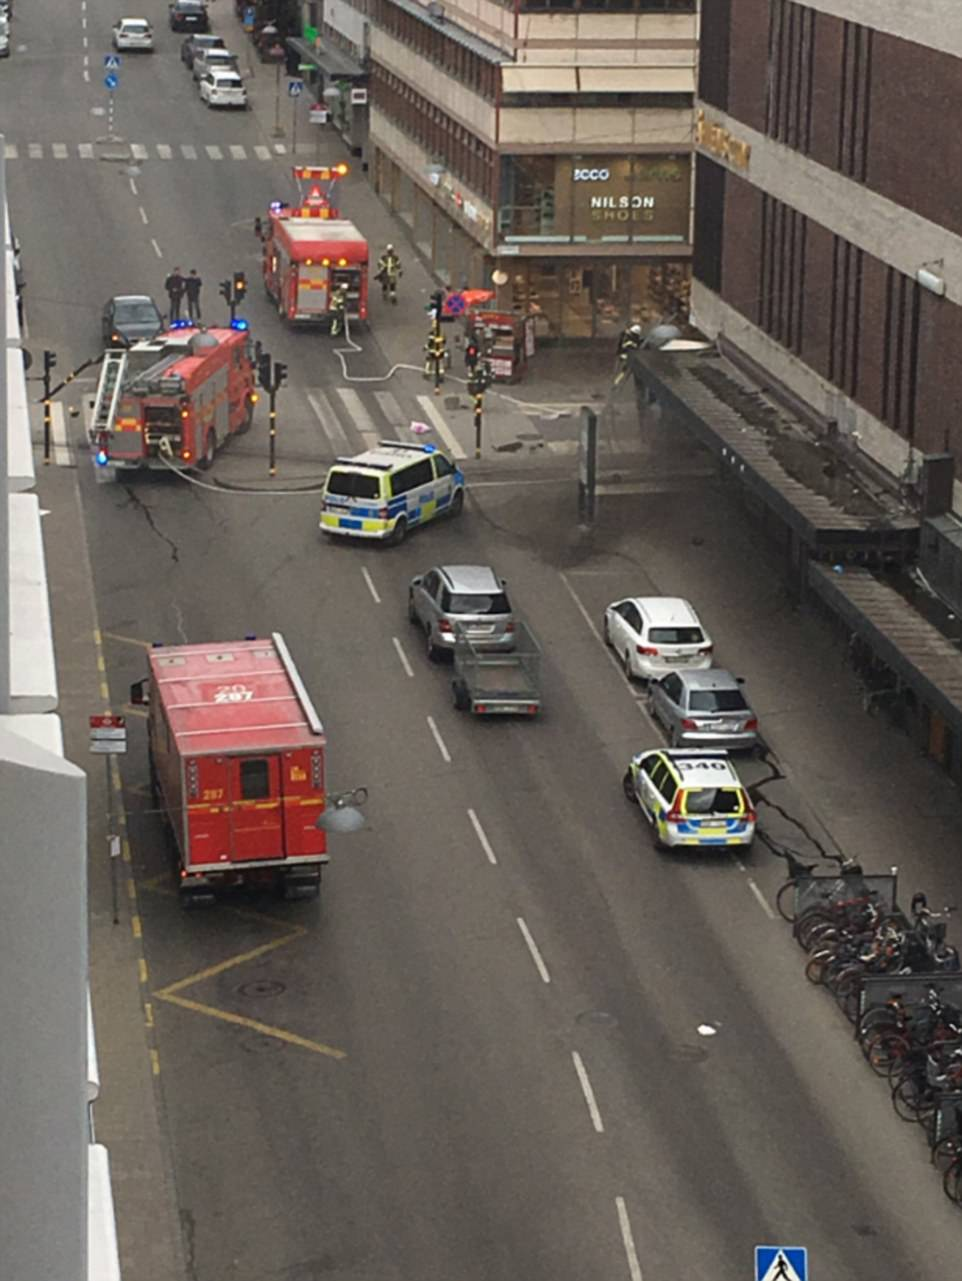 Above are the scenes in the city currently, where dozens of emergency services vehicles are tending to injured people